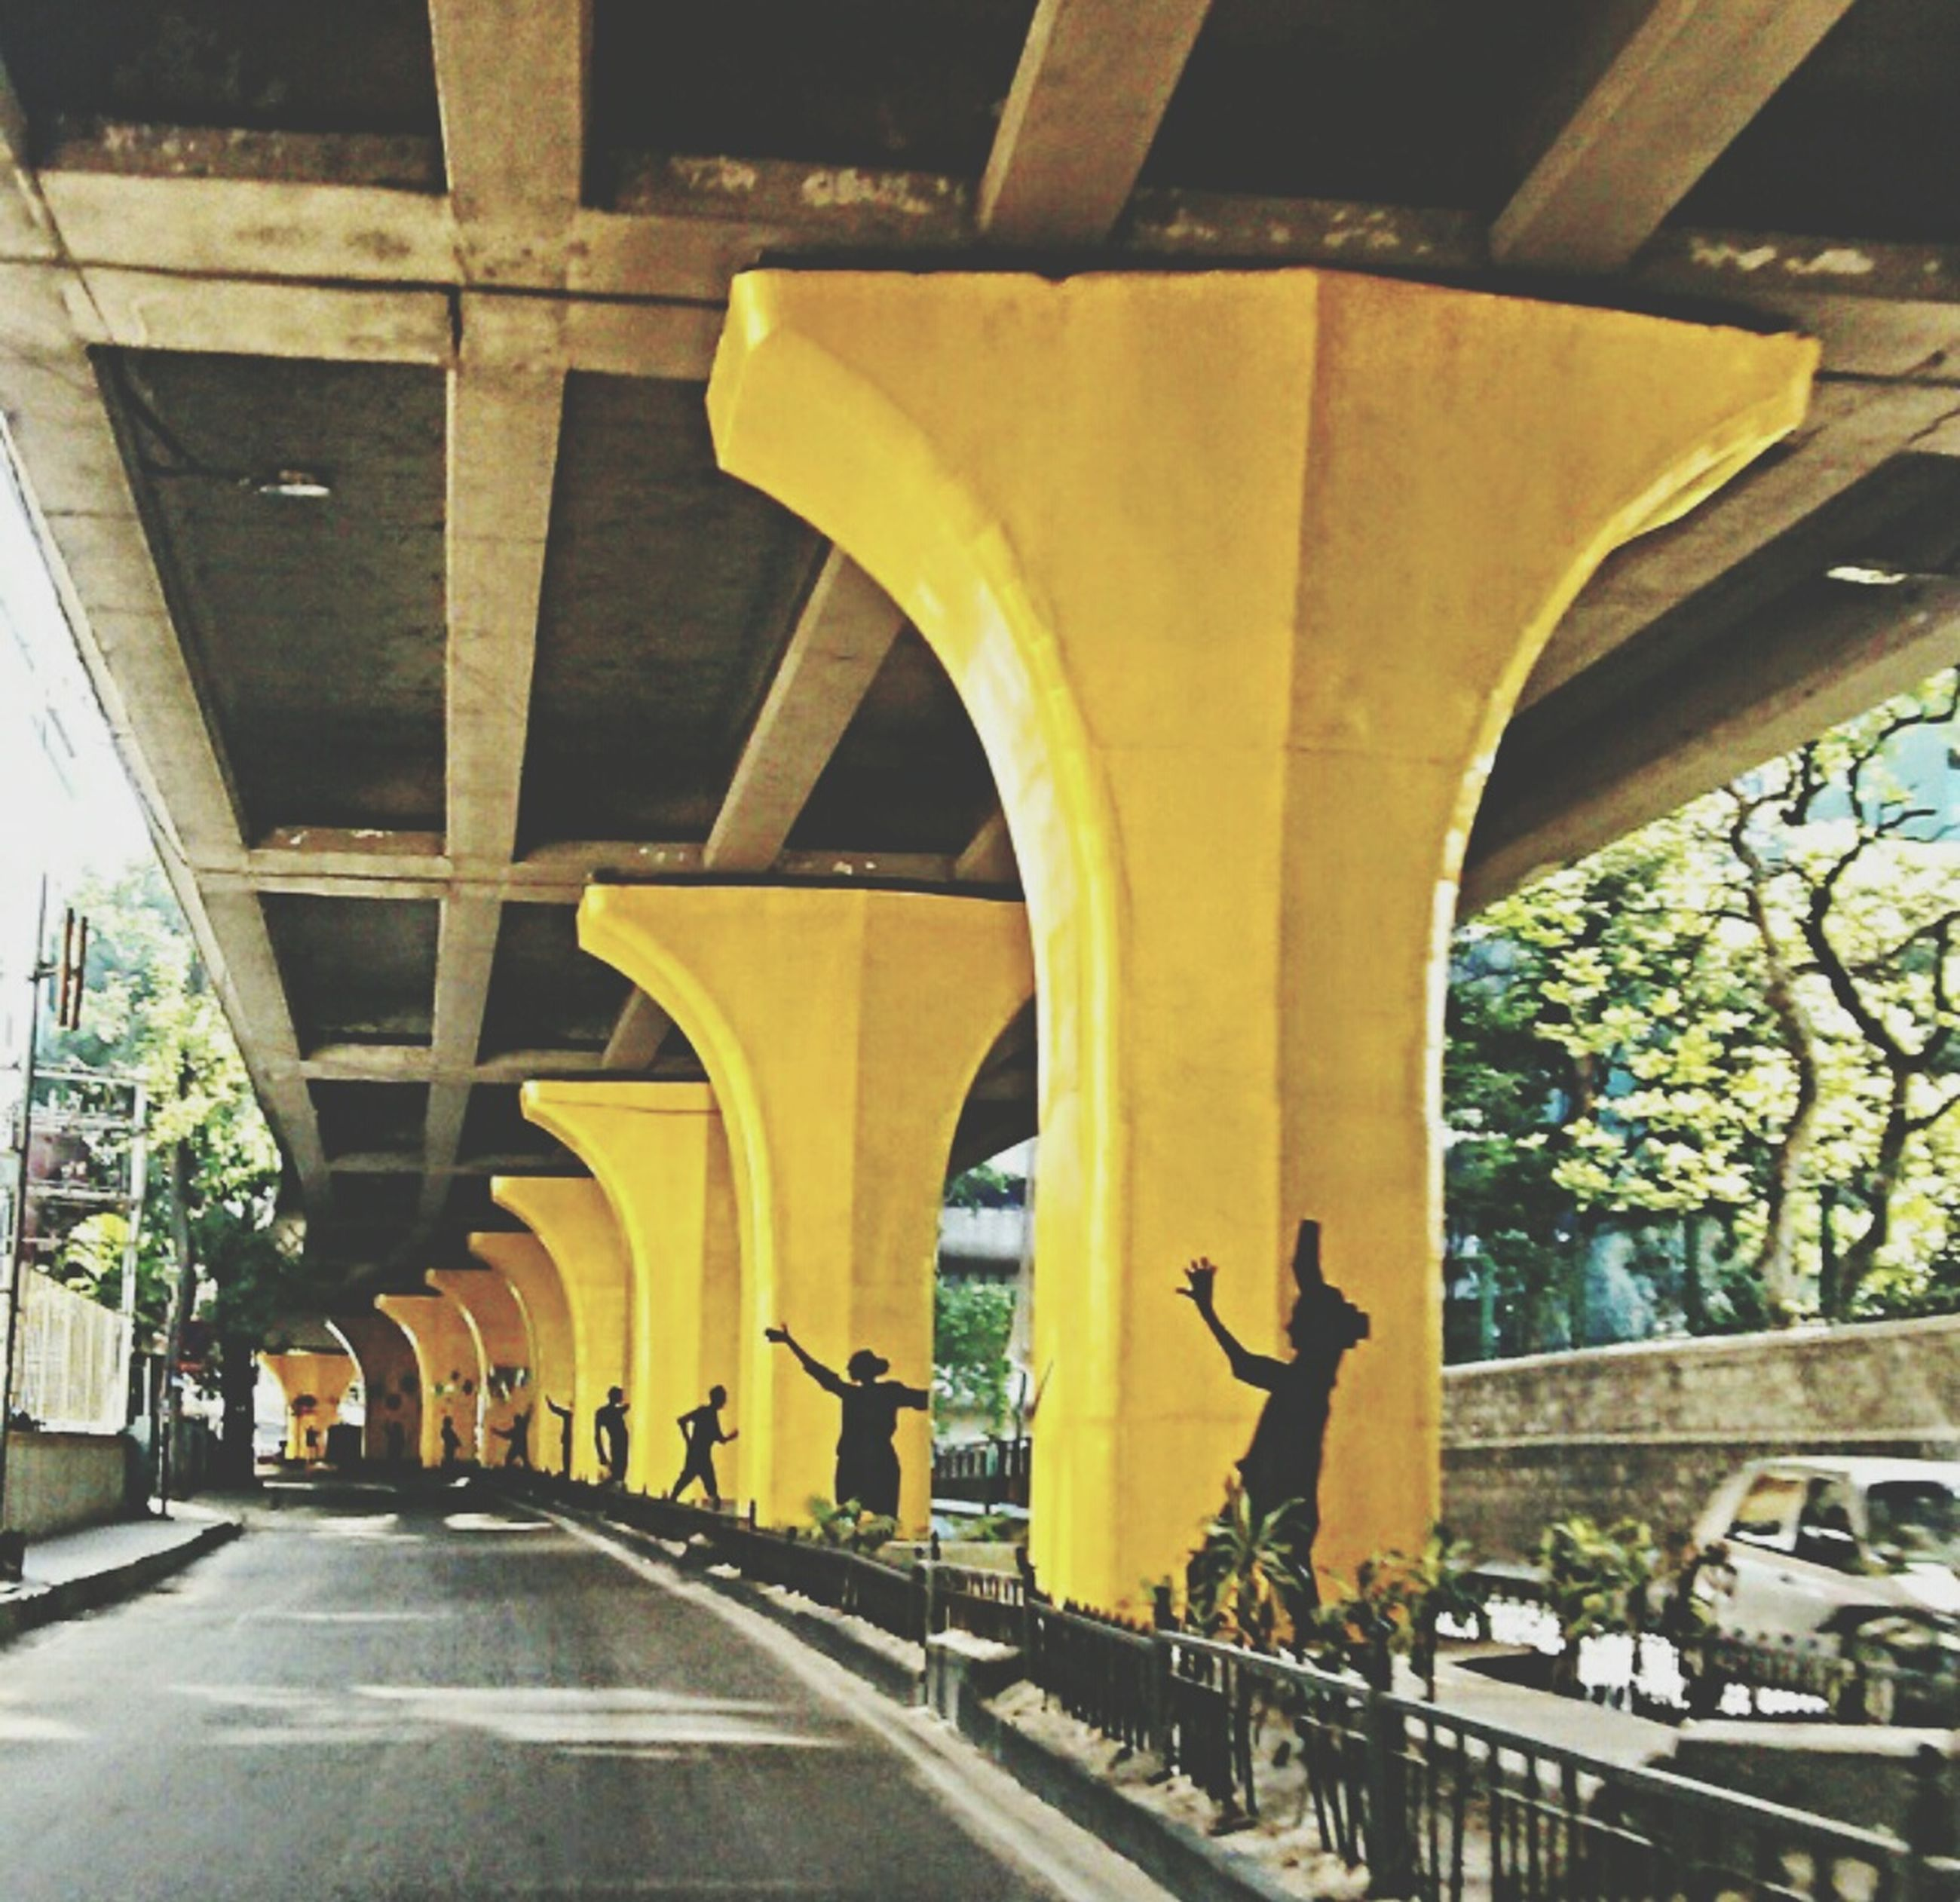 architecture, built structure, transportation, arch, the way forward, building exterior, architectural column, diminishing perspective, road, city, bridge - man made structure, connection, street, incidental people, in a row, car, ceiling, tree, no people, illuminated